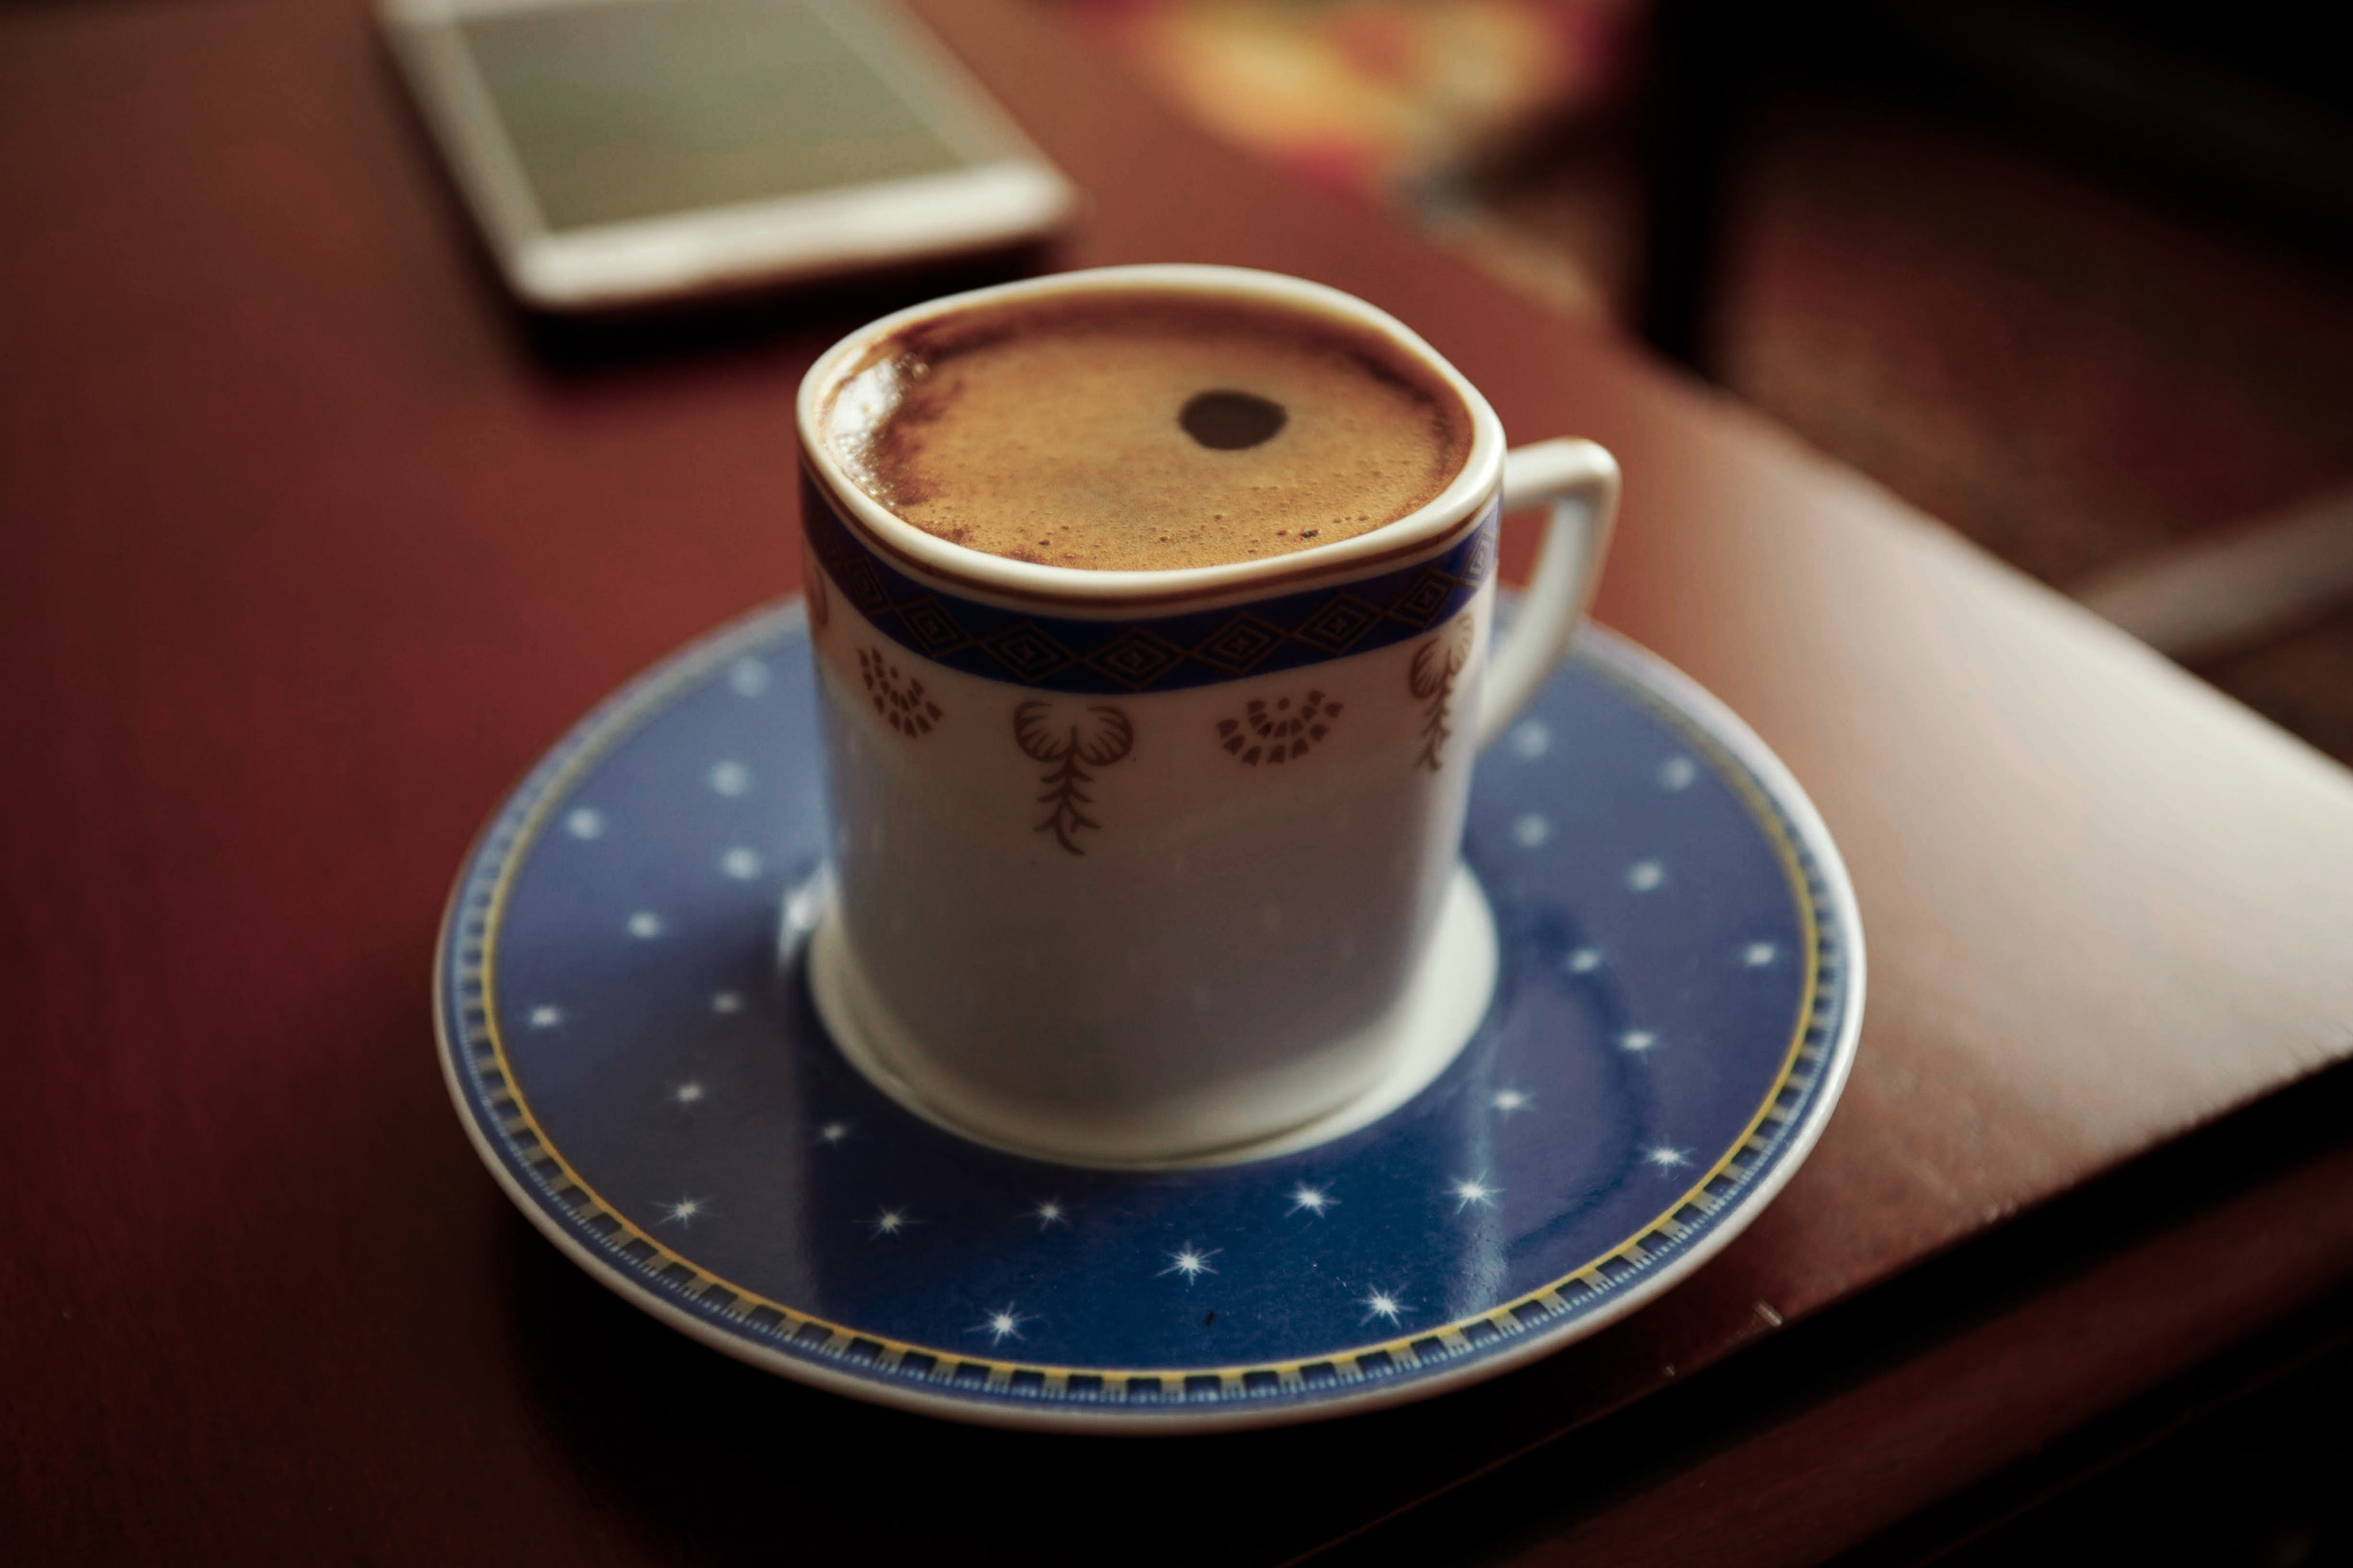 Ceramic Cup Filled With Coffee